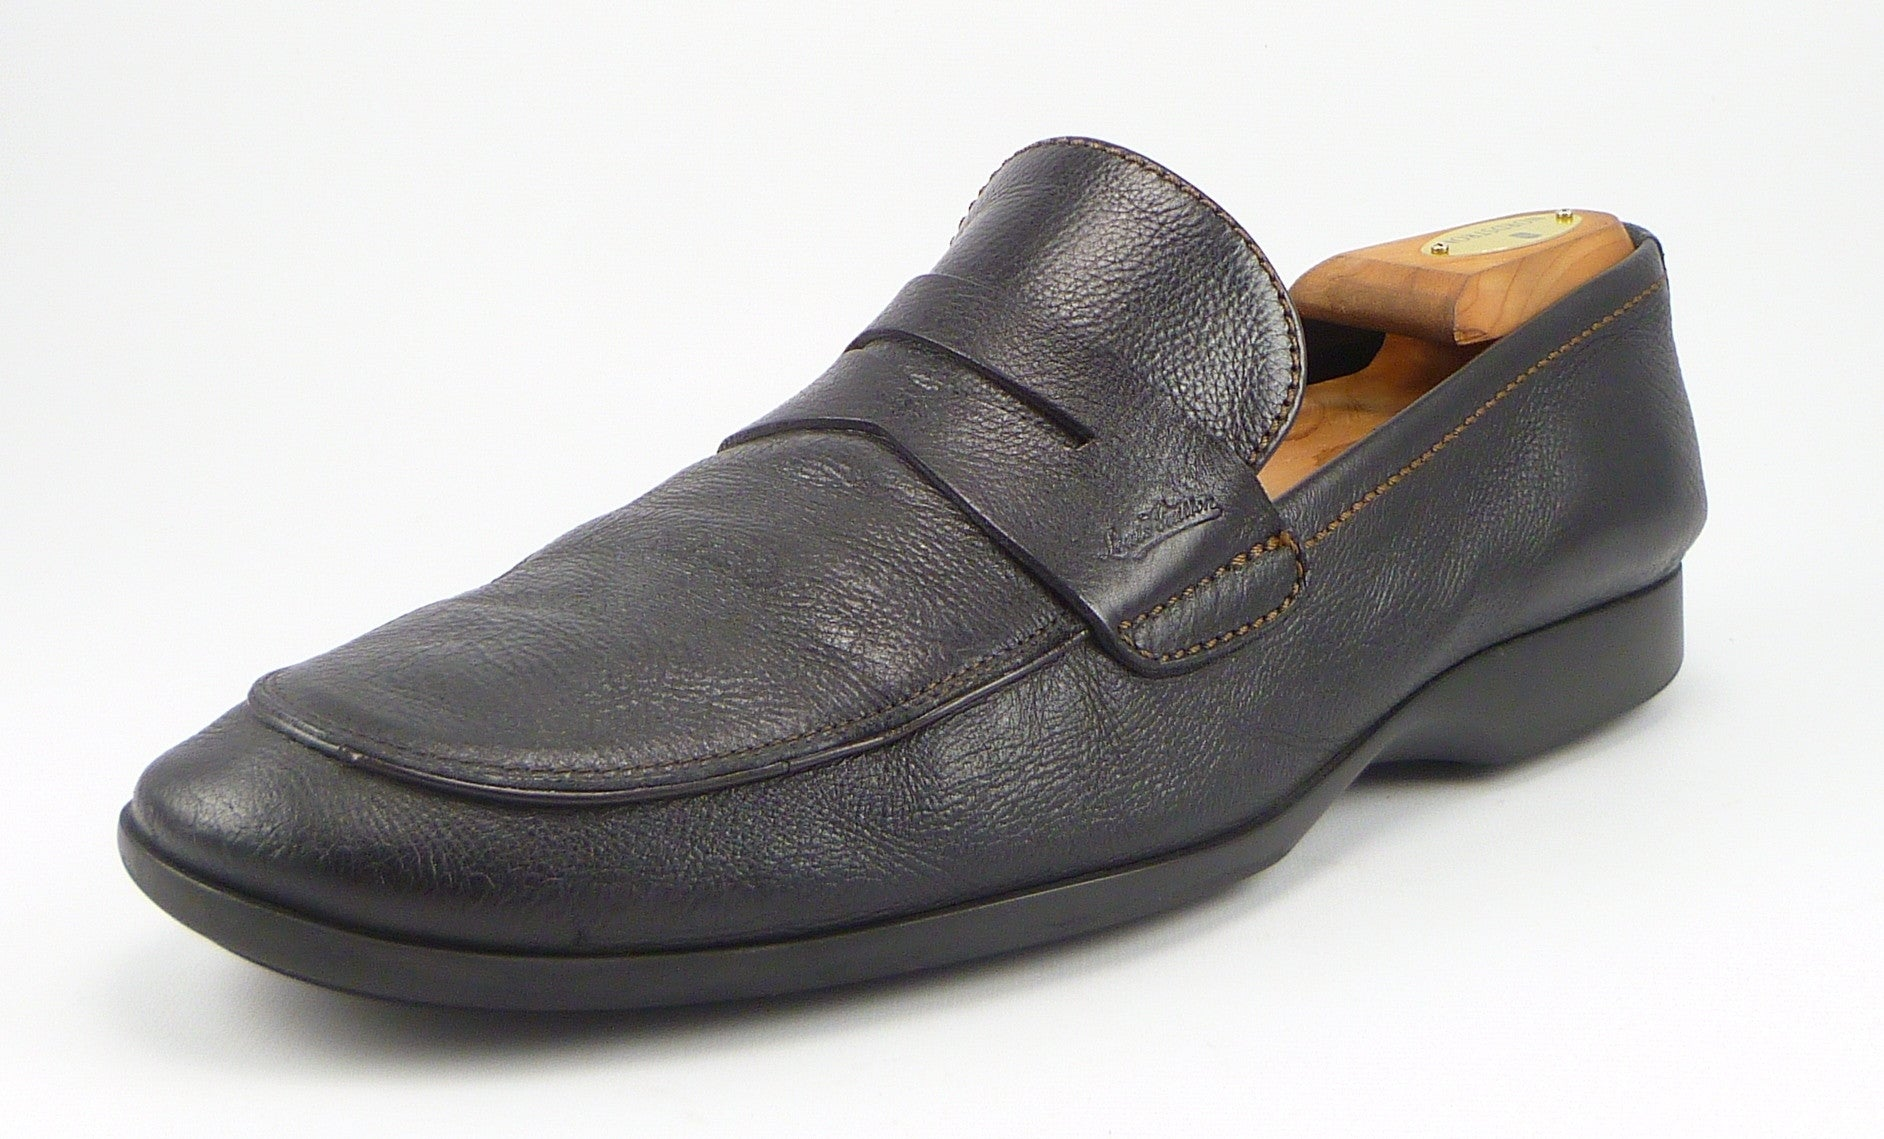 6c4107739ad2 Louis Vuitton Mens Shoes 11 US Leather Loafer Black – Distinctive ...